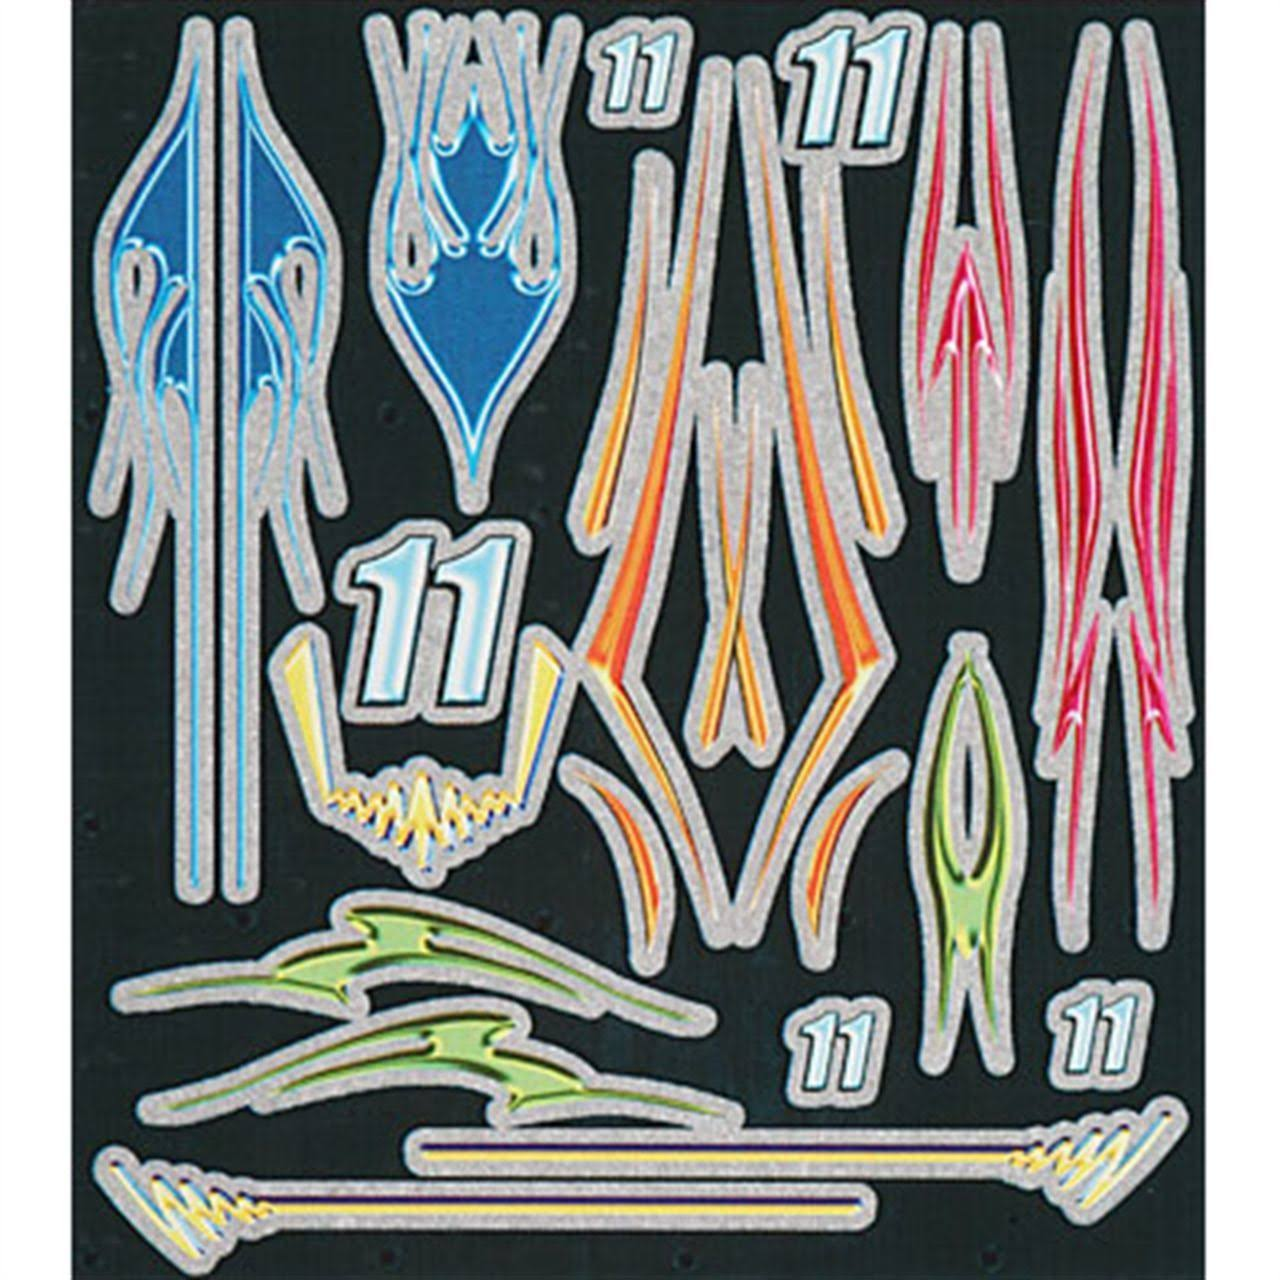 Pinecar Derby Racers Dry Transfer Decals - Neon Stripes